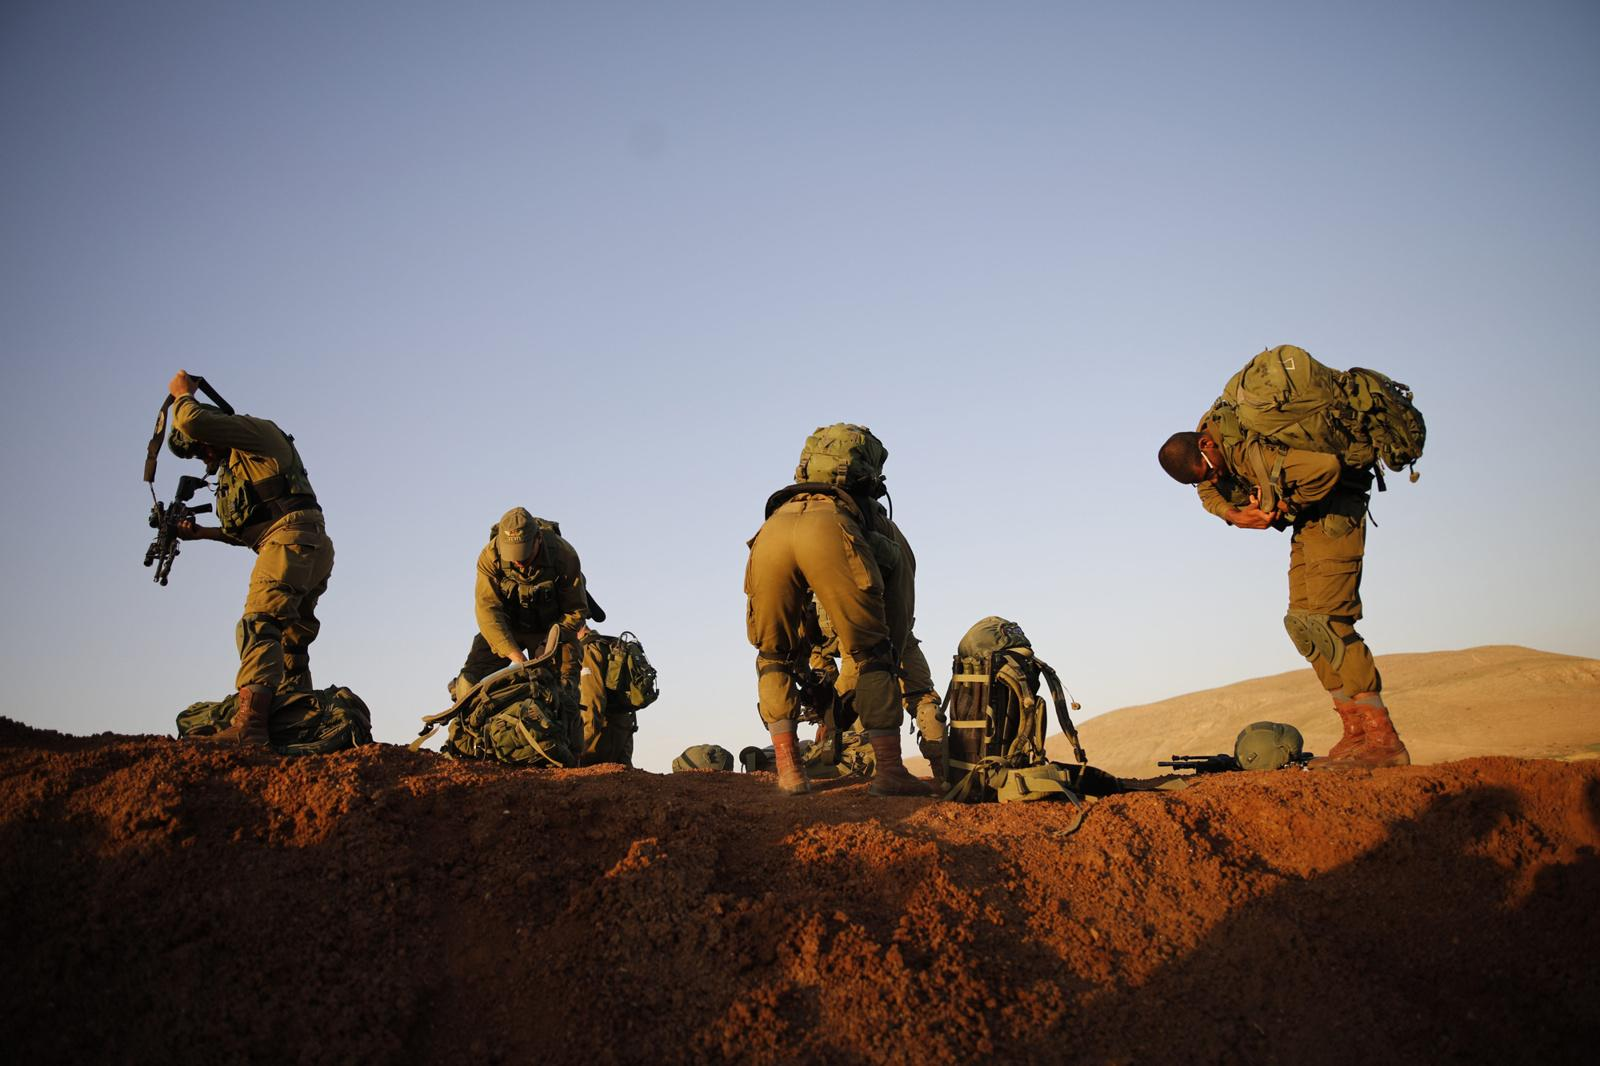 JORDAN VALLEY, ISRAEL - APRIL 05, 2017: Israeli infantry soldiers from the Haruv battalion of the Kfir Brigade prepare themselves for a counterterrorism drill that takes place in open fields close to the Kfir Brigade base in the Jordan Valley, West Bank, Israel, on April 05, 2017.